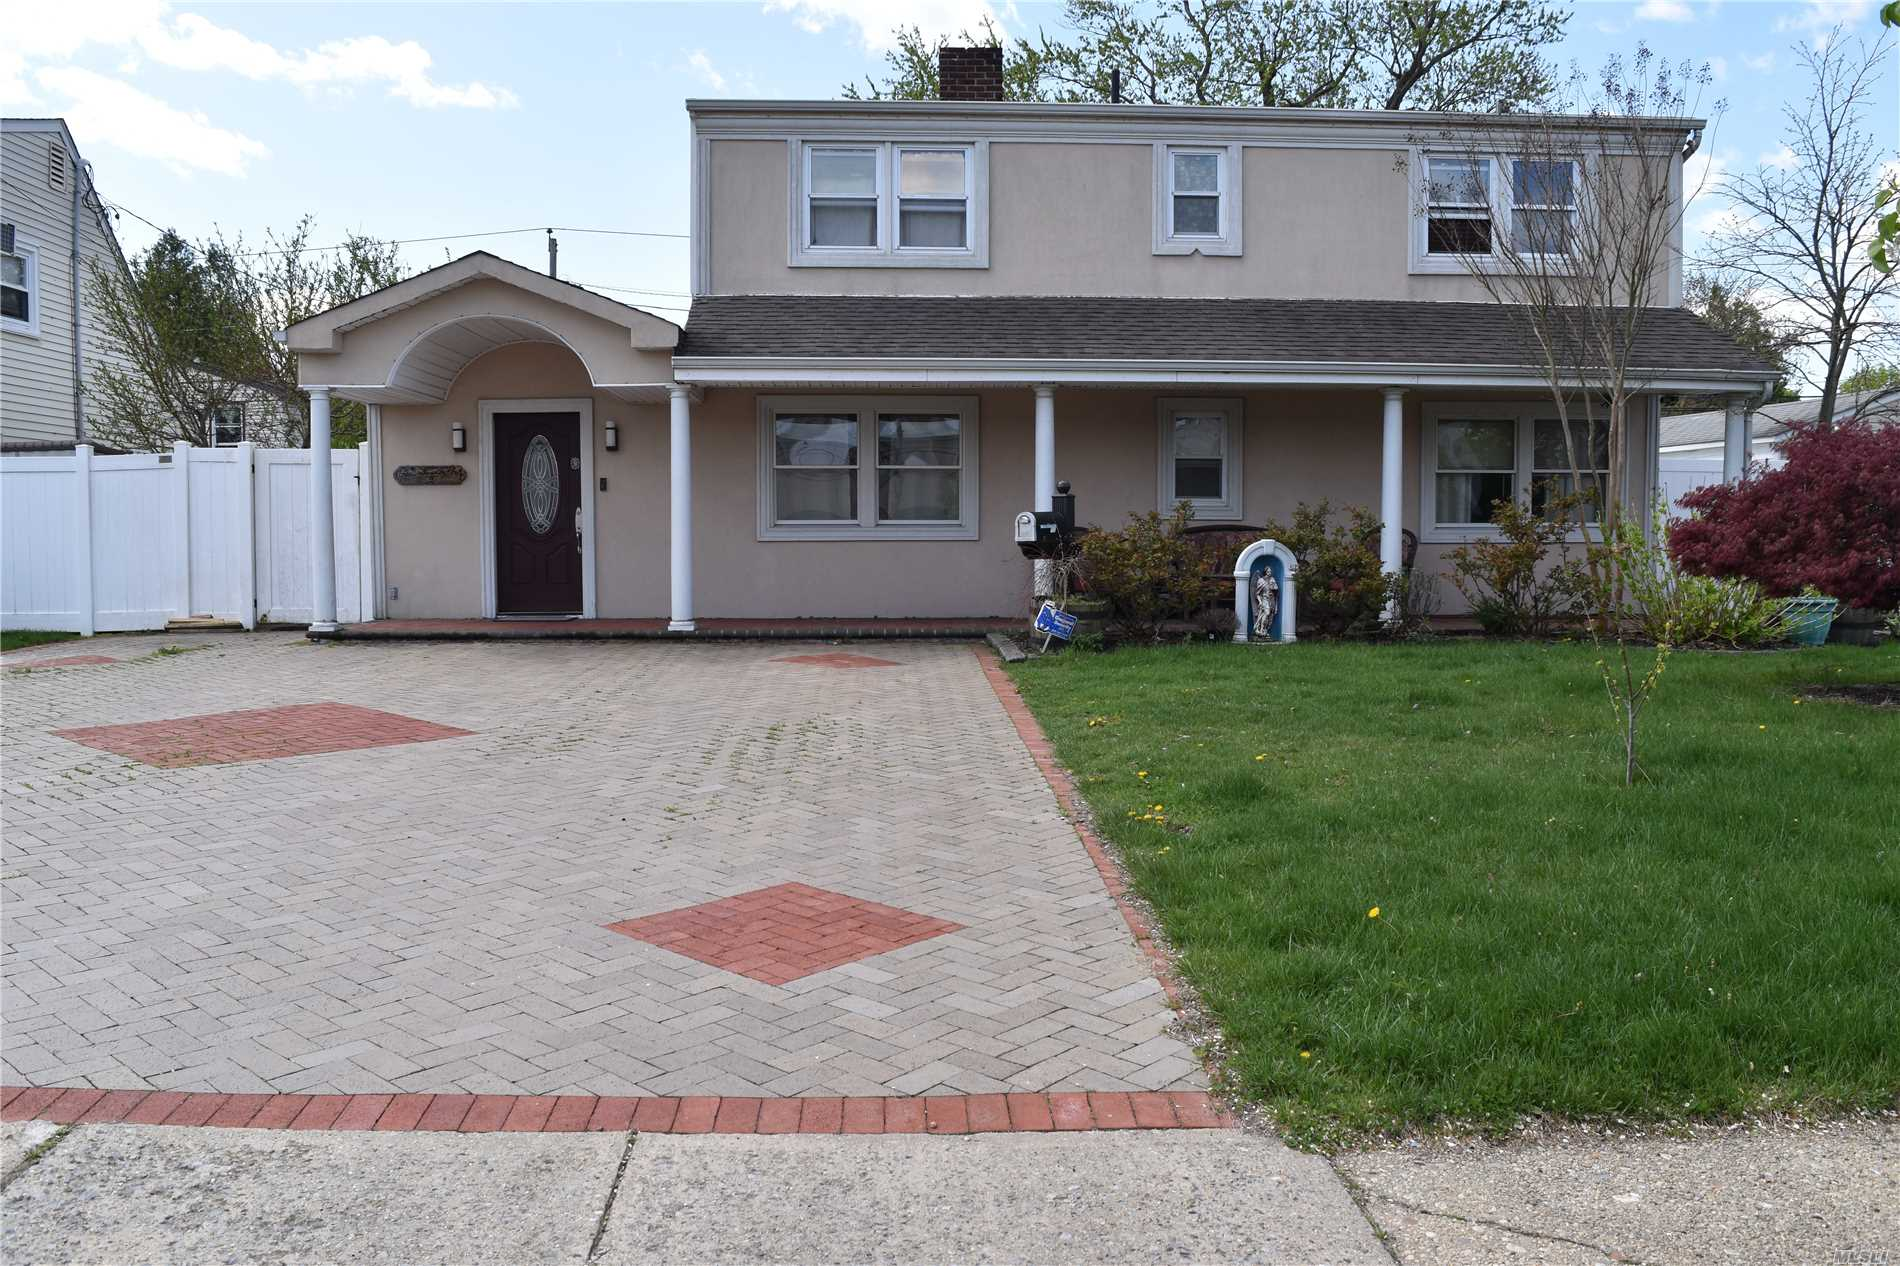 Don't miss it!!! Location, Location, Location! Beautiful house, 5 bedrooms, 2 full bathrooms, lovely kitchen, fireplace,  Eik, two walk-in closets, open floor layout, stainless steel appliances, new refrigerator. Spacious backyard perfect for entertainment. Close to everything, major parkway and shopping center. Plenty room for extended family. Possible accessory apartment with proper permit.